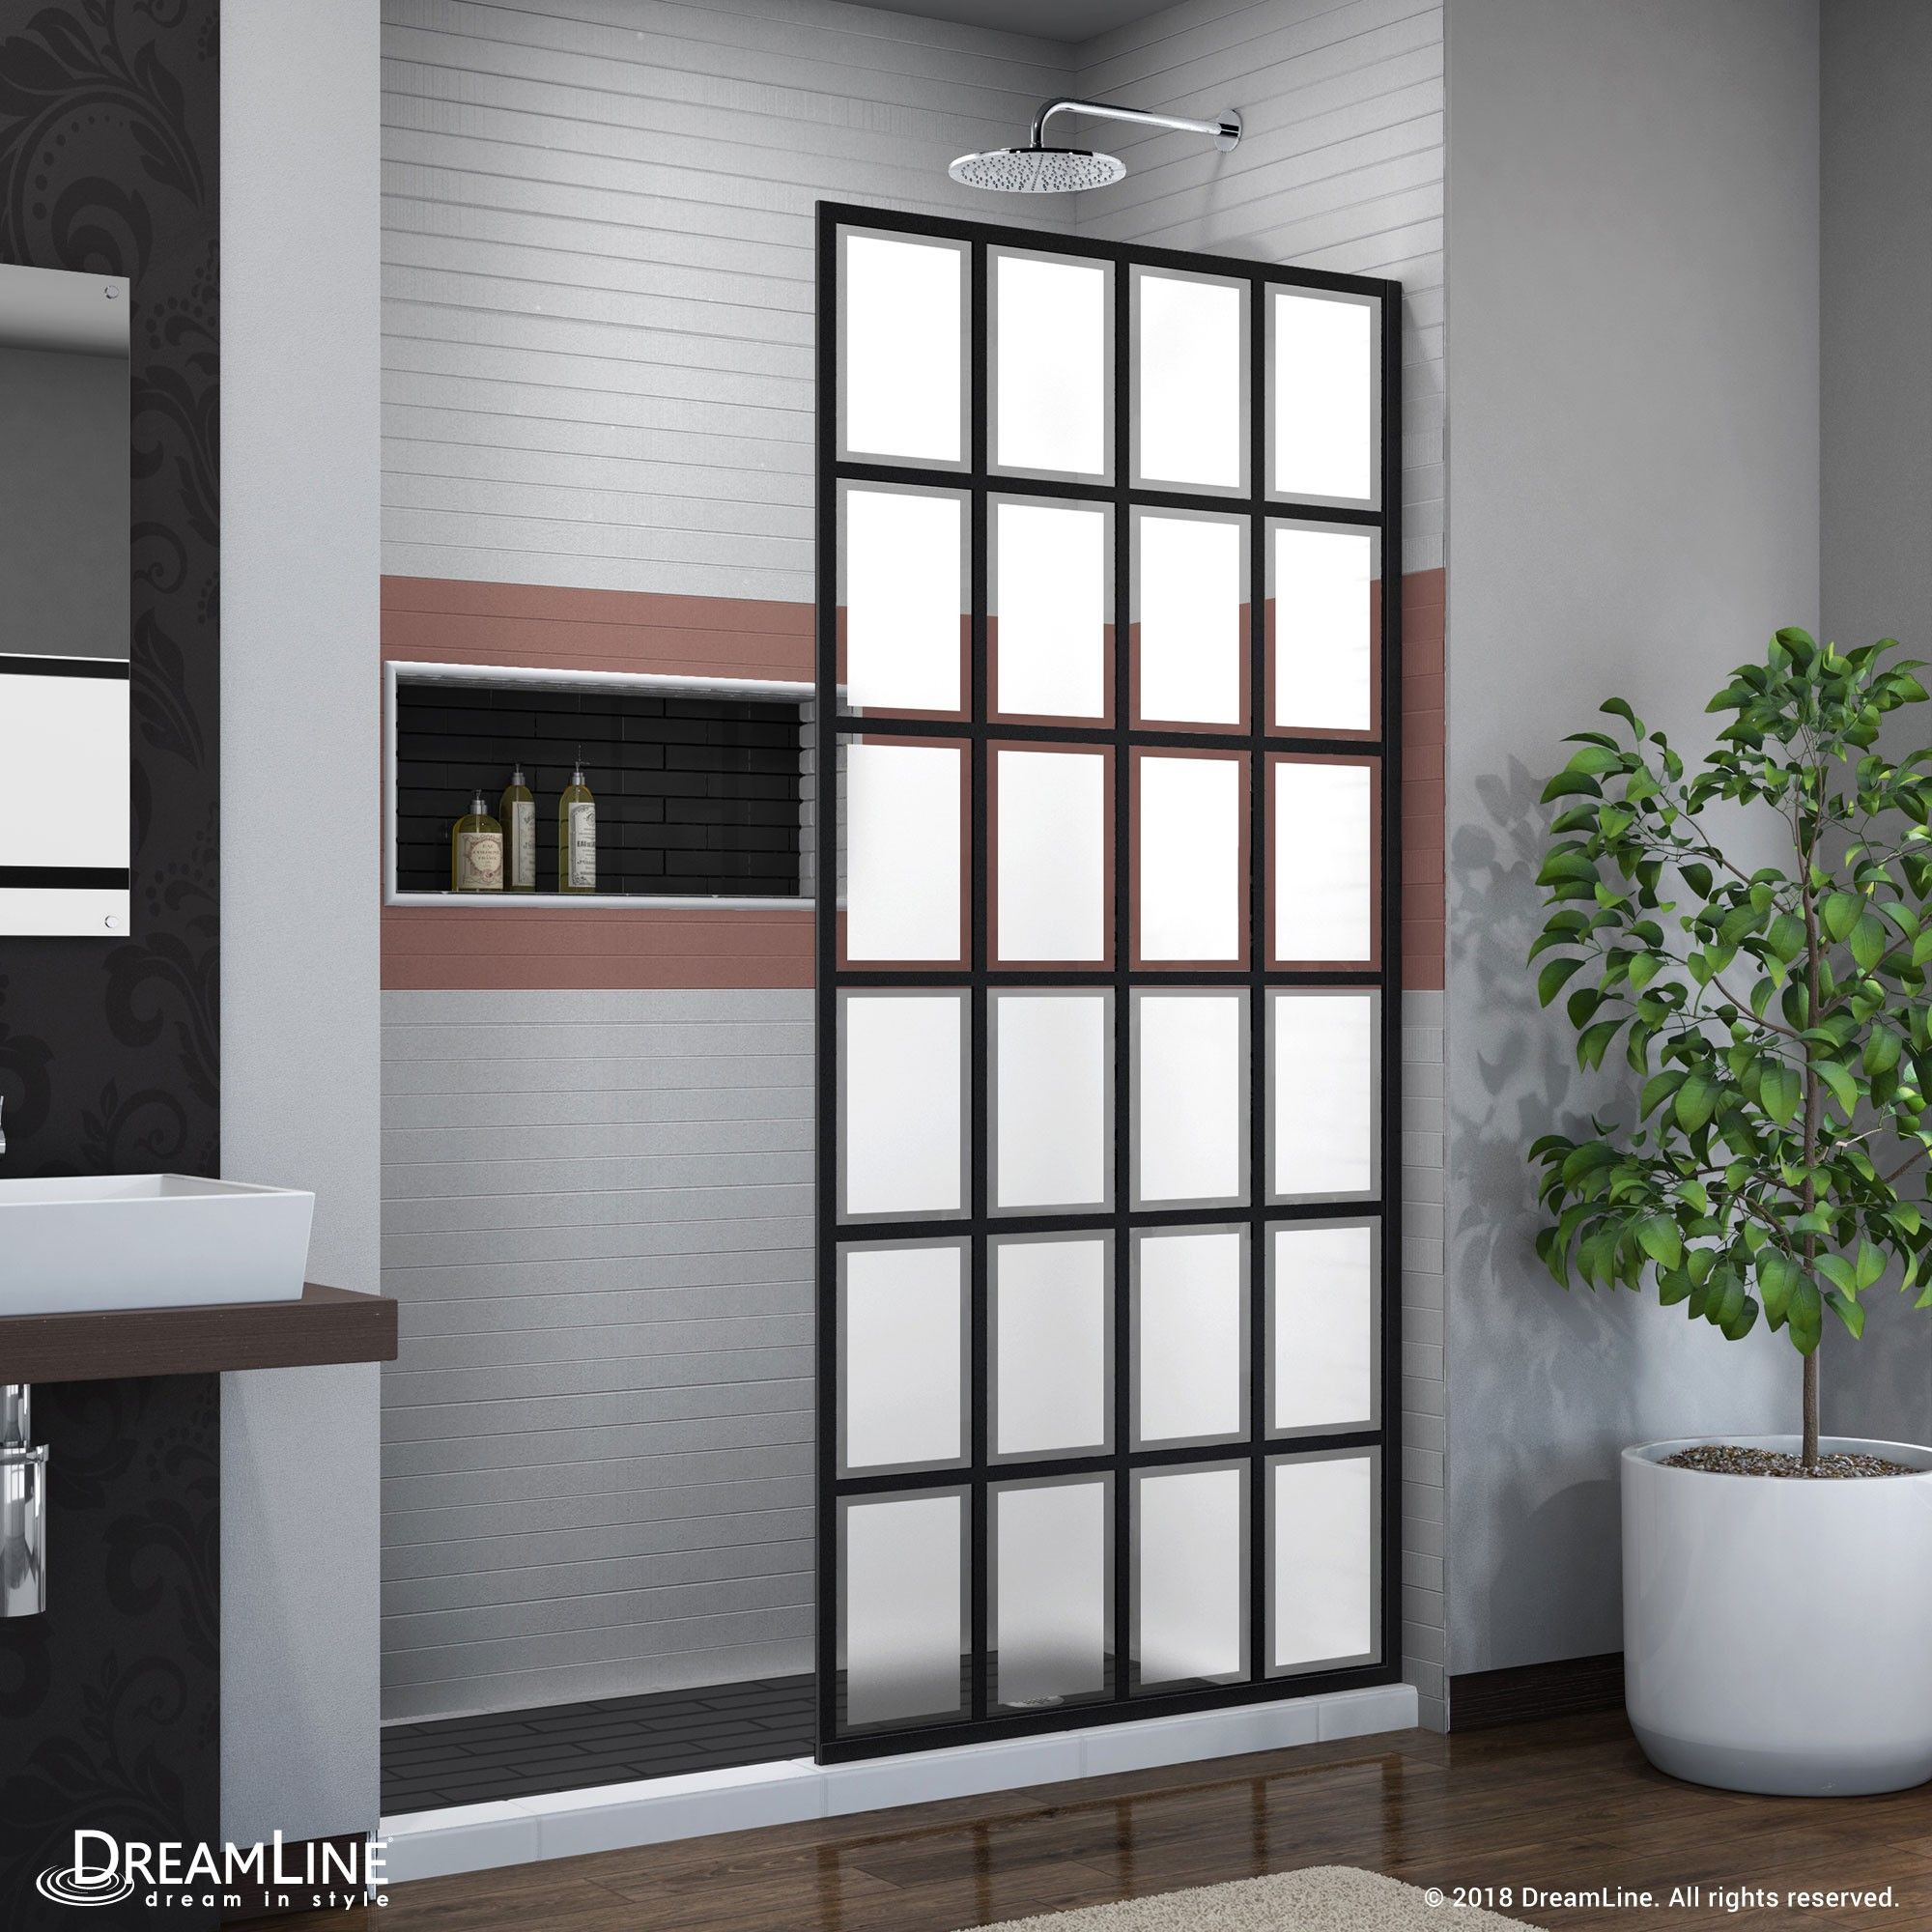 The Dreamline Rhone Part Of The French Linea Collection Is A Single Panel Walk In Shower Design With Black Shower Doors Frameless Shower Doors Shower Doors